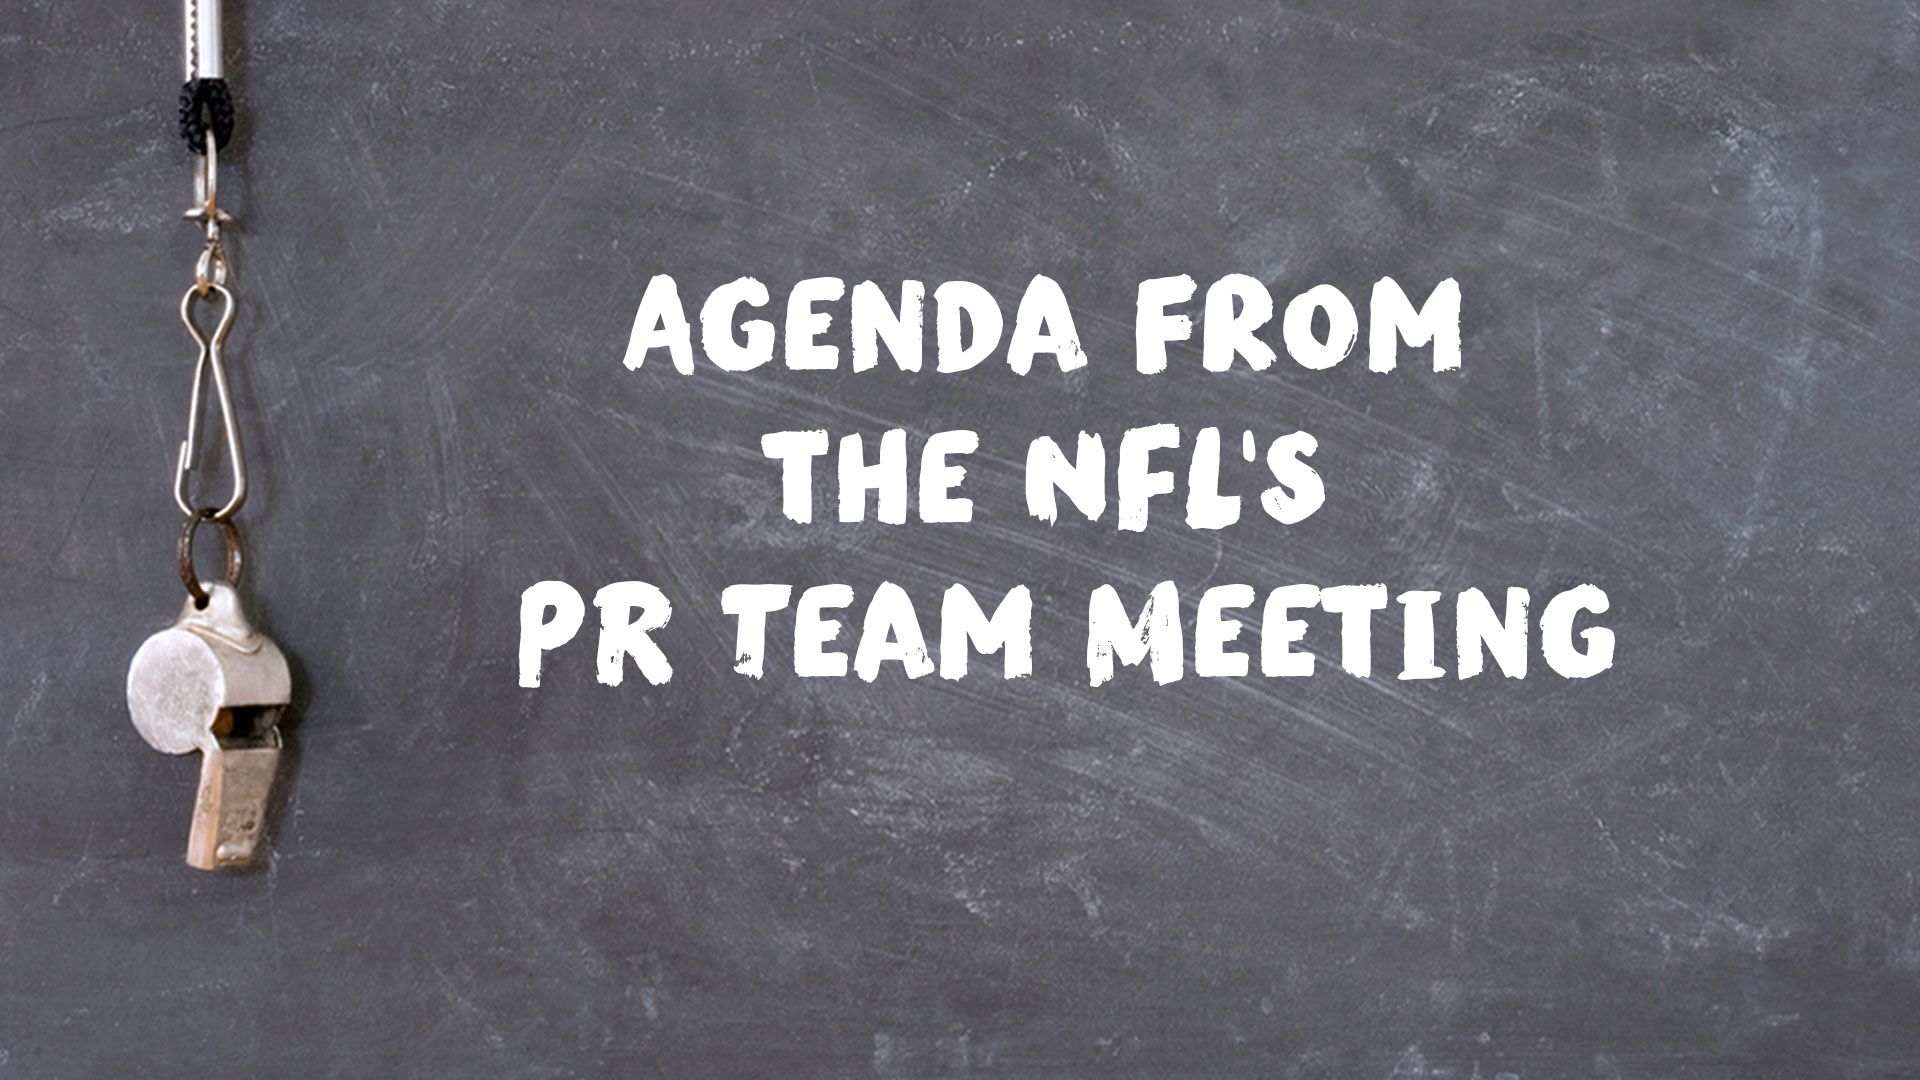 Agenda from the NFL's Most Recent PR Team Meeting